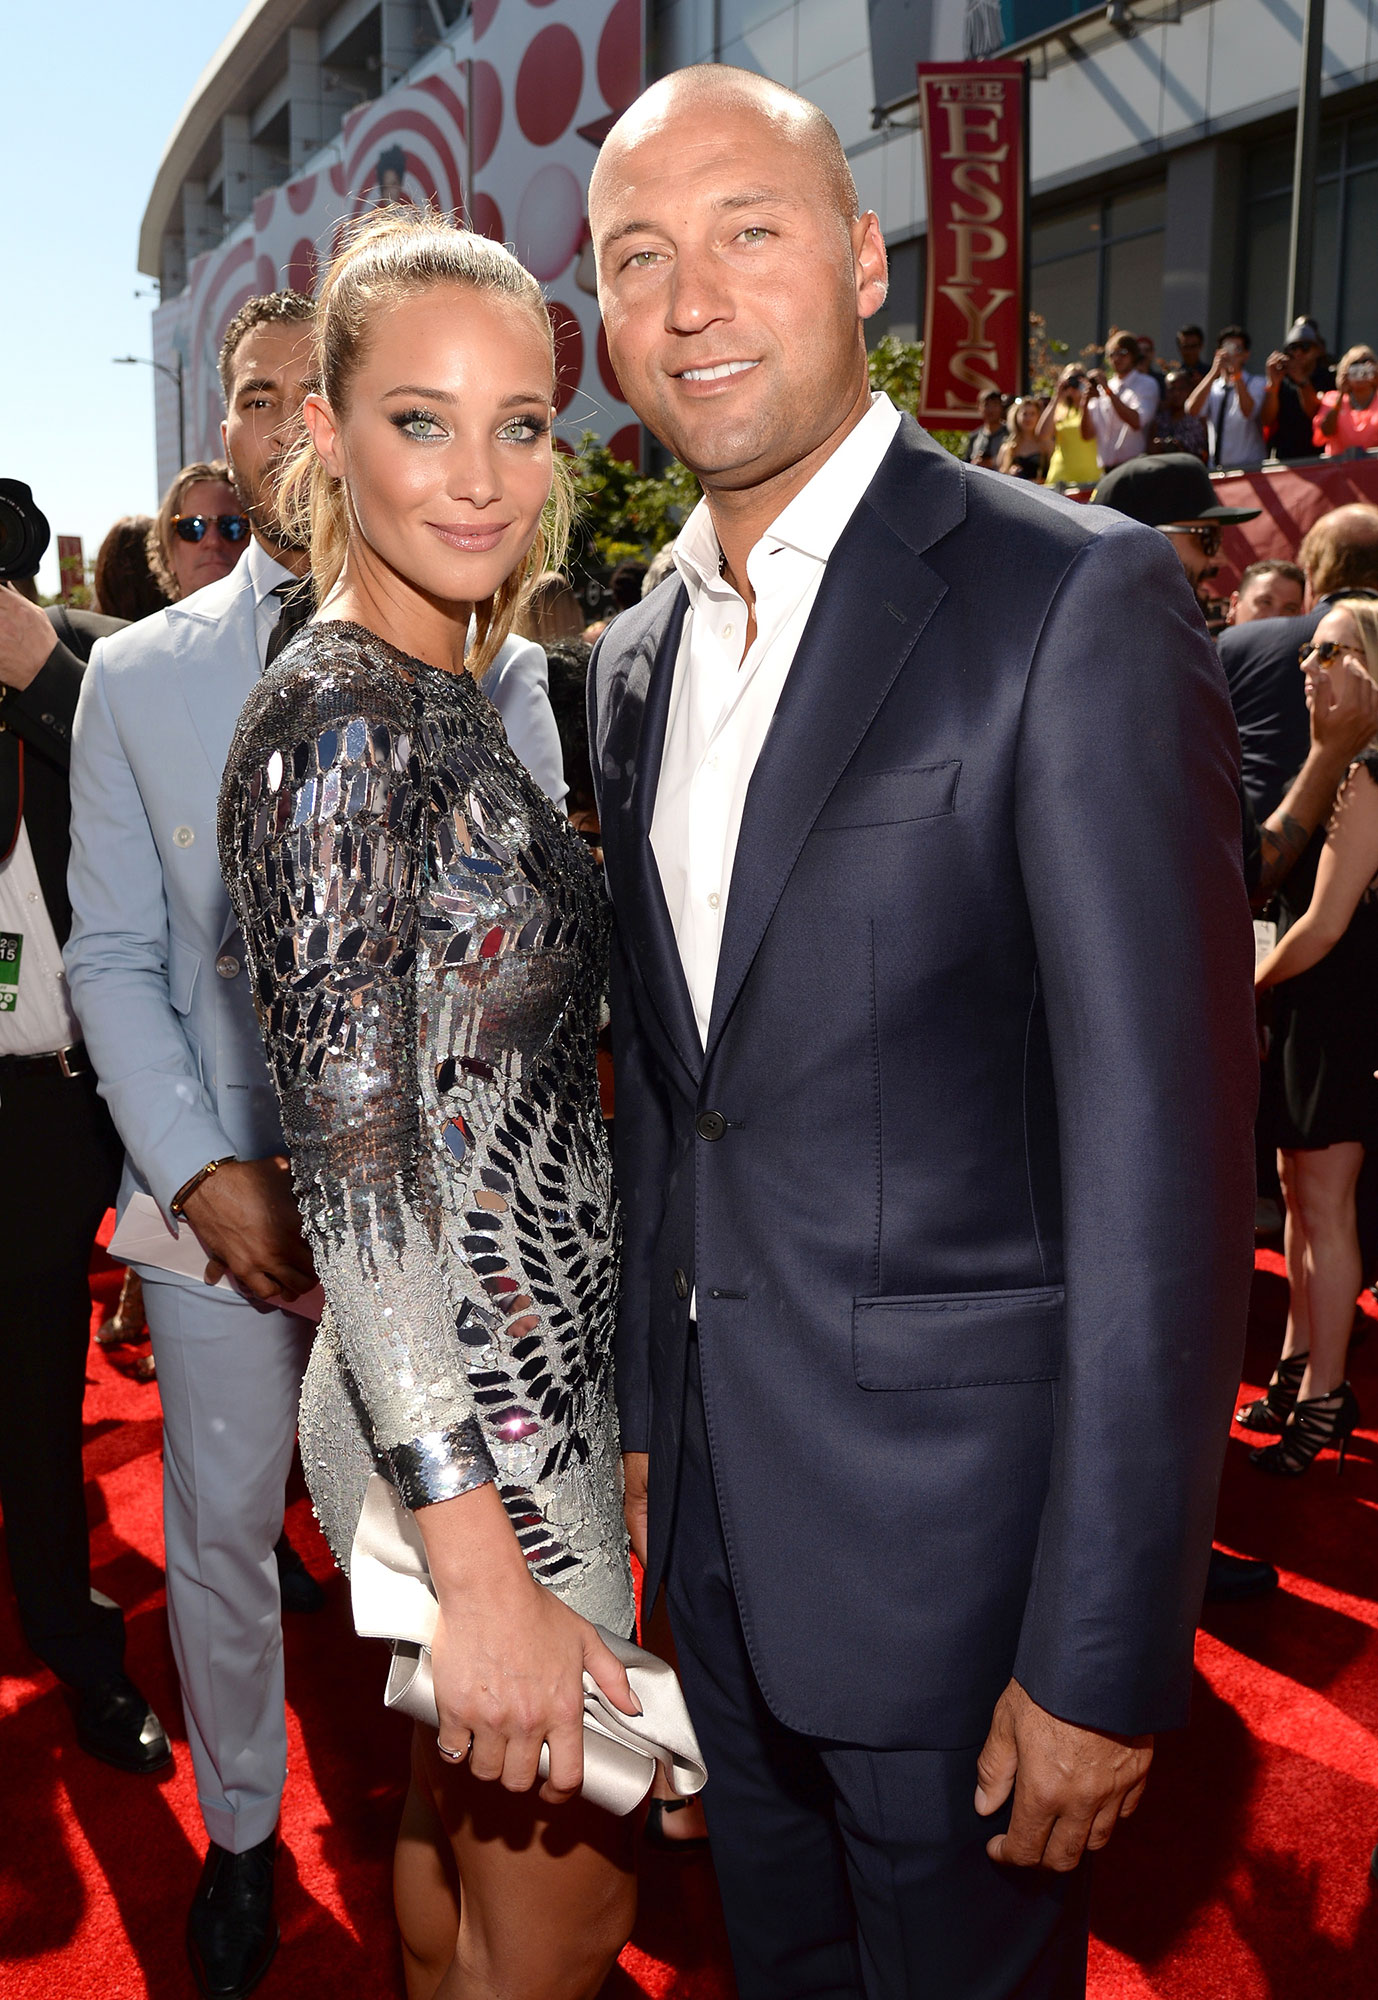 Celebrity Couples Who Got Engaged and Married in the Same Year - Engaged: October 25, 2015 Married: July 9, 2015 Status: Still married with two children, daughters Bella and Story